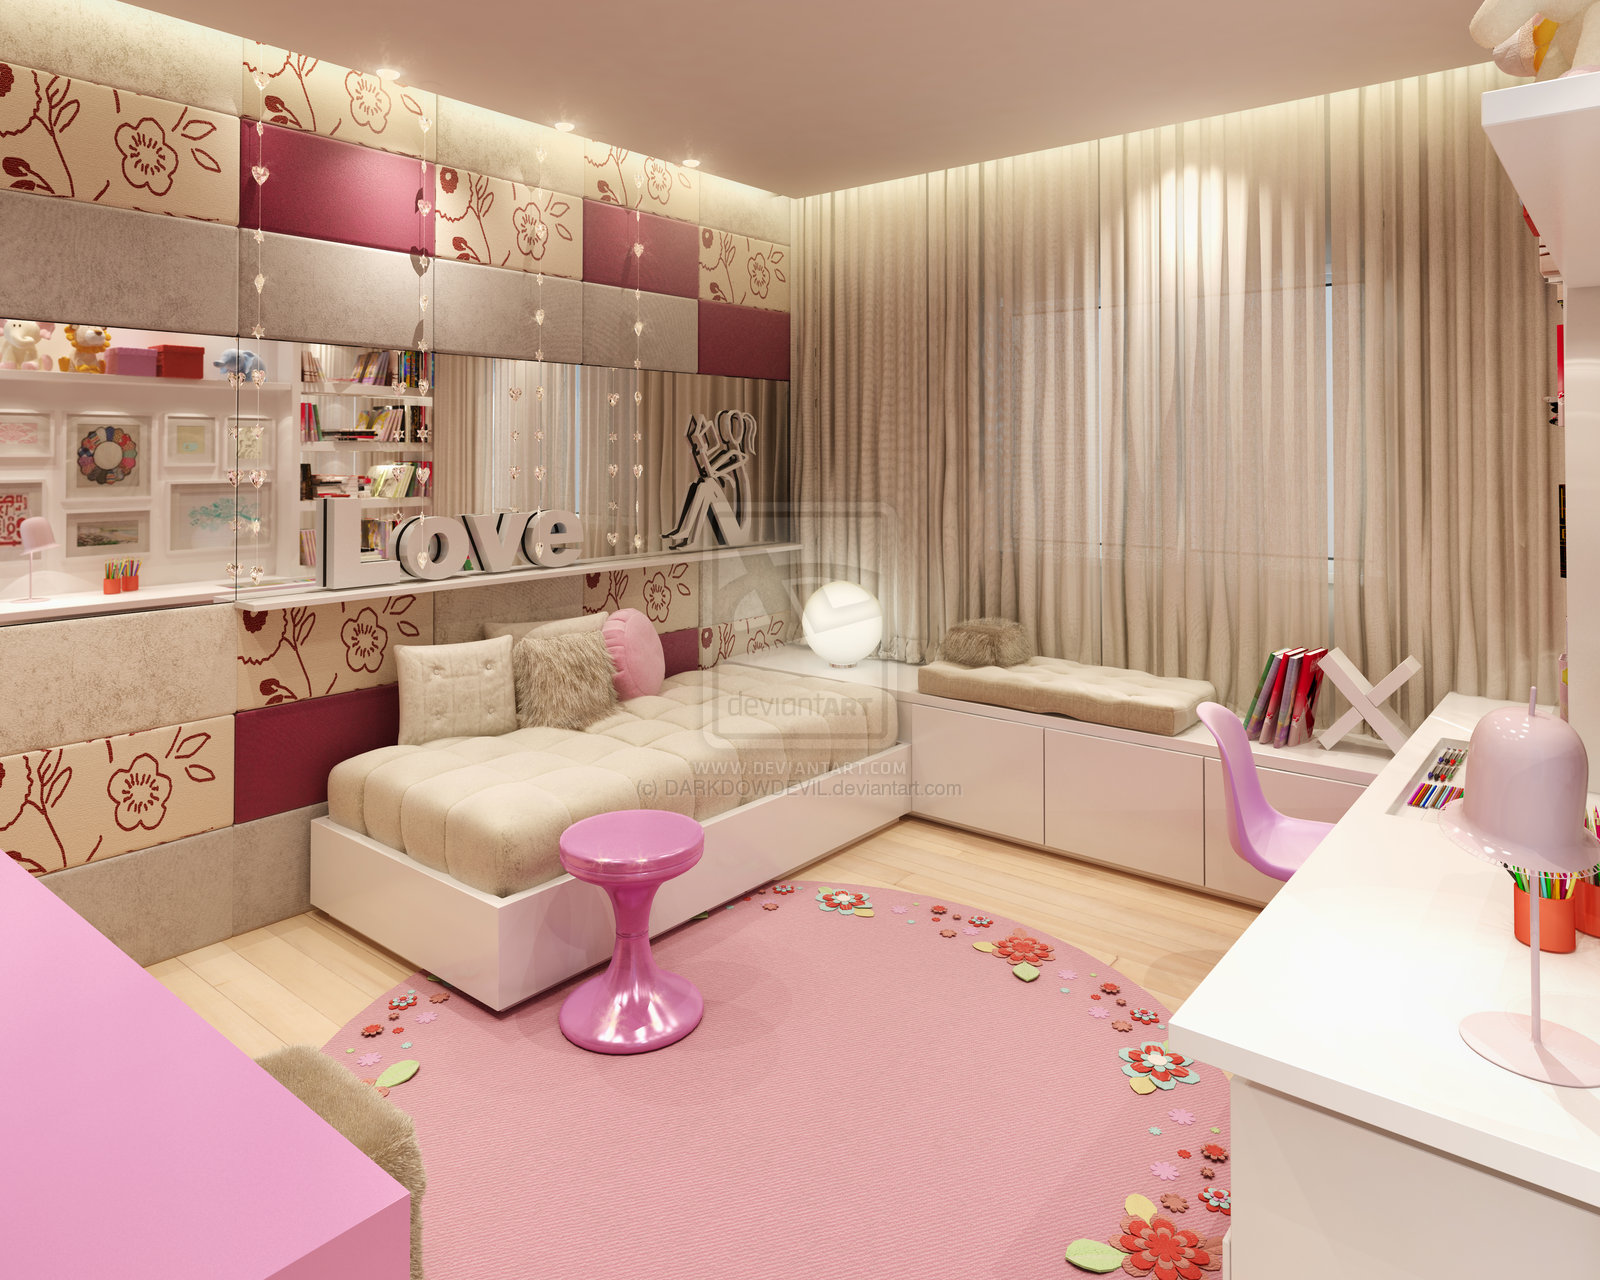 Girly bedroom design ideas azee for Girl bedroom designs